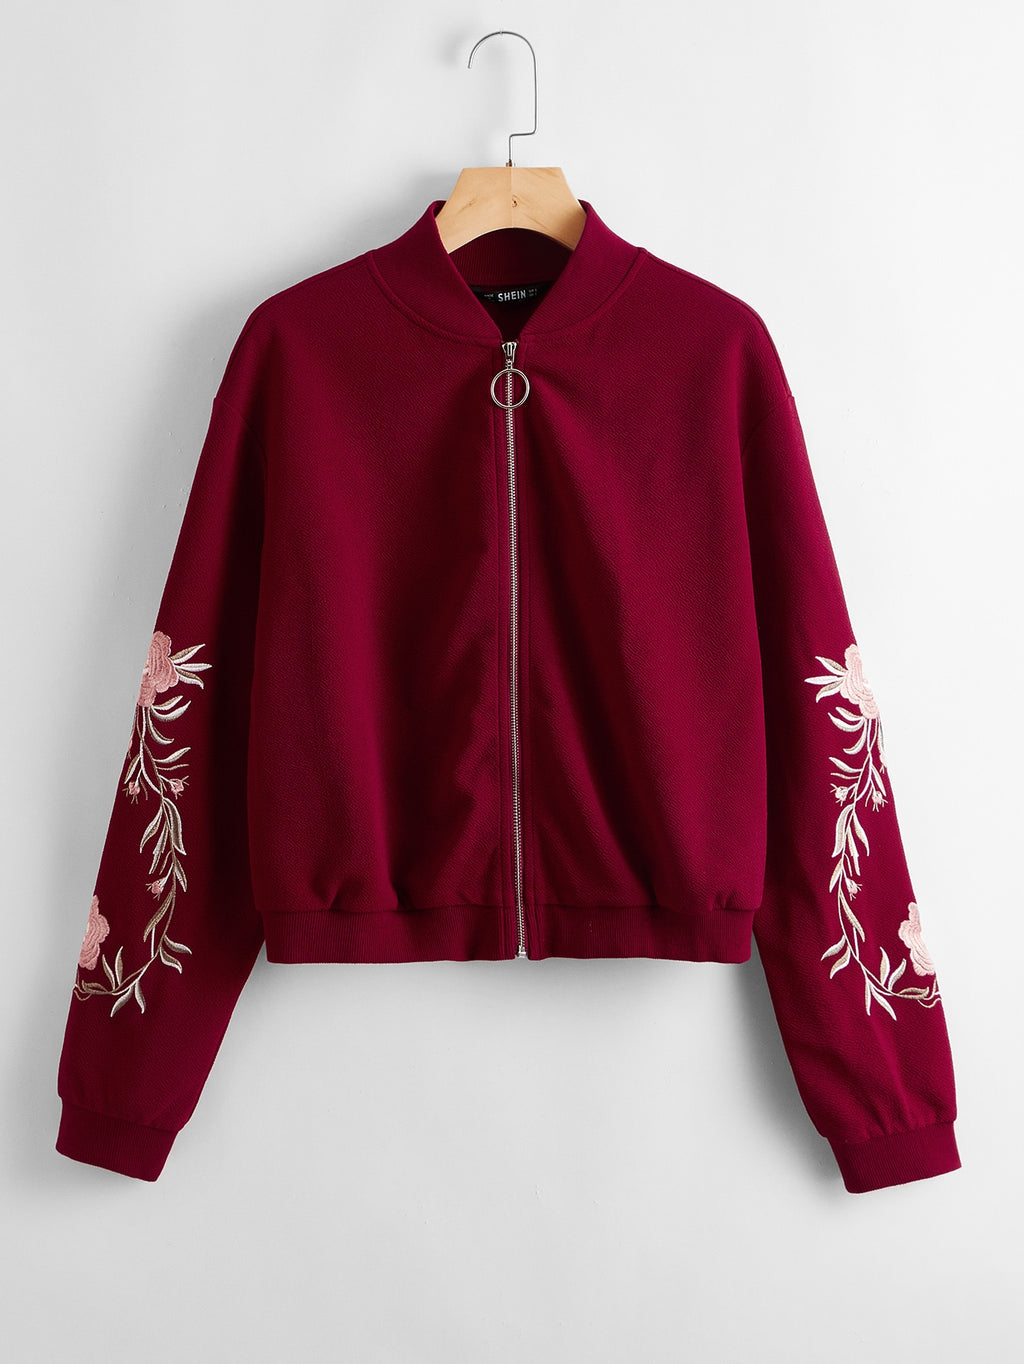 Embroidered Floral Detail O-ring Zip Up Bomber Jacket FD